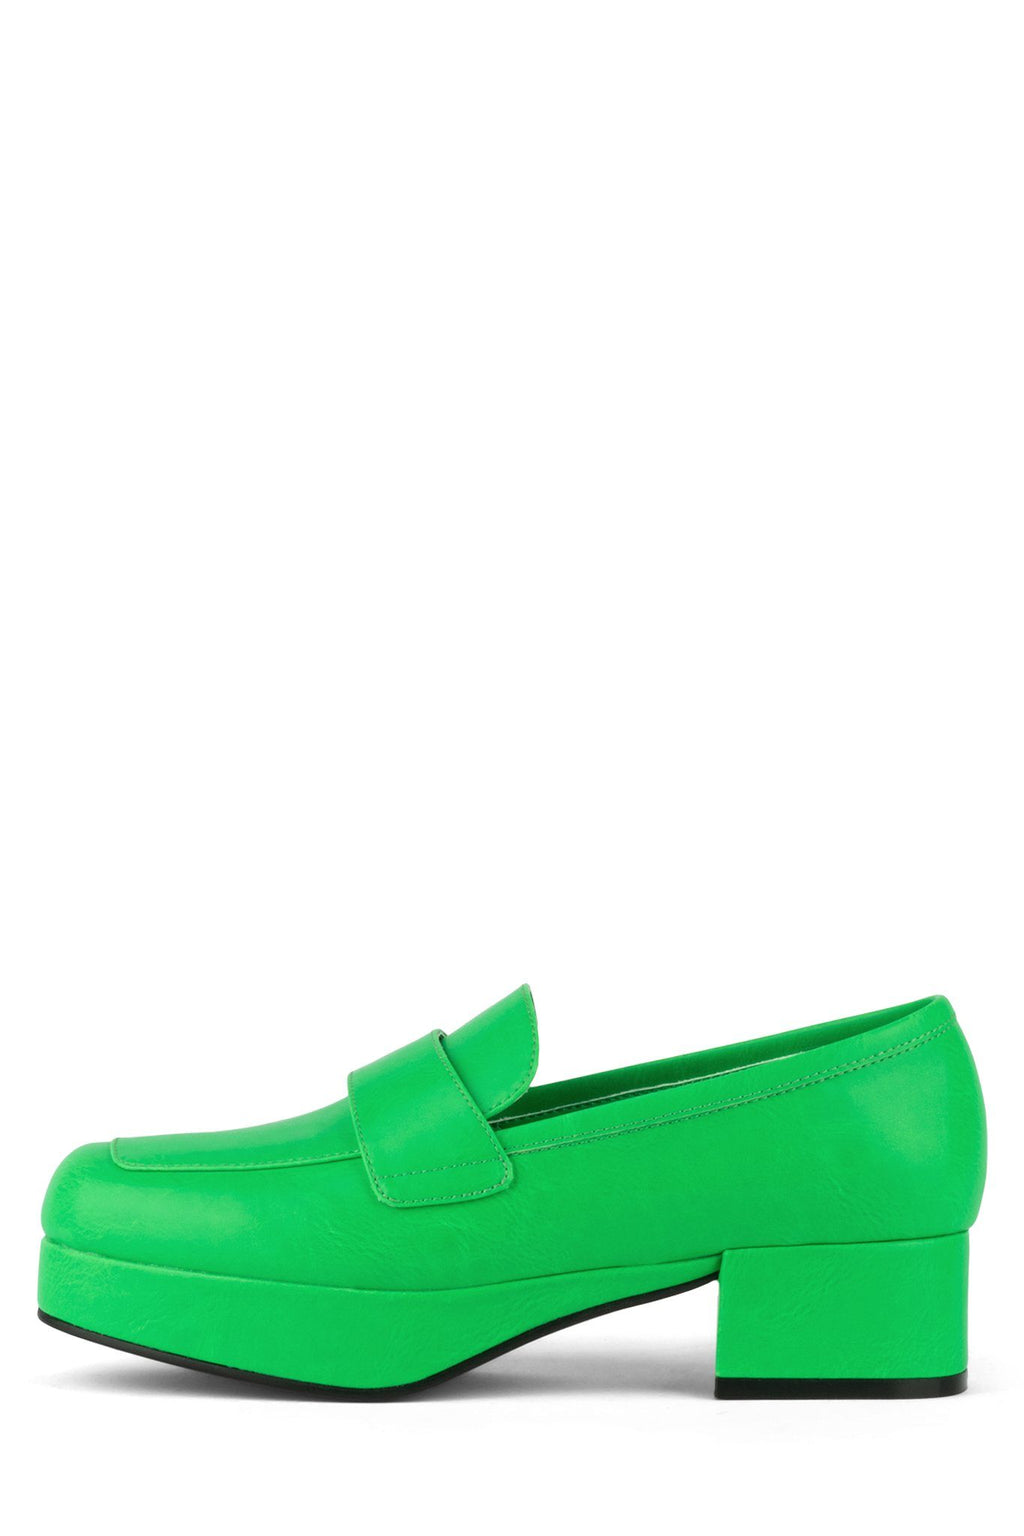 STUDENT Loafer DV Green 6